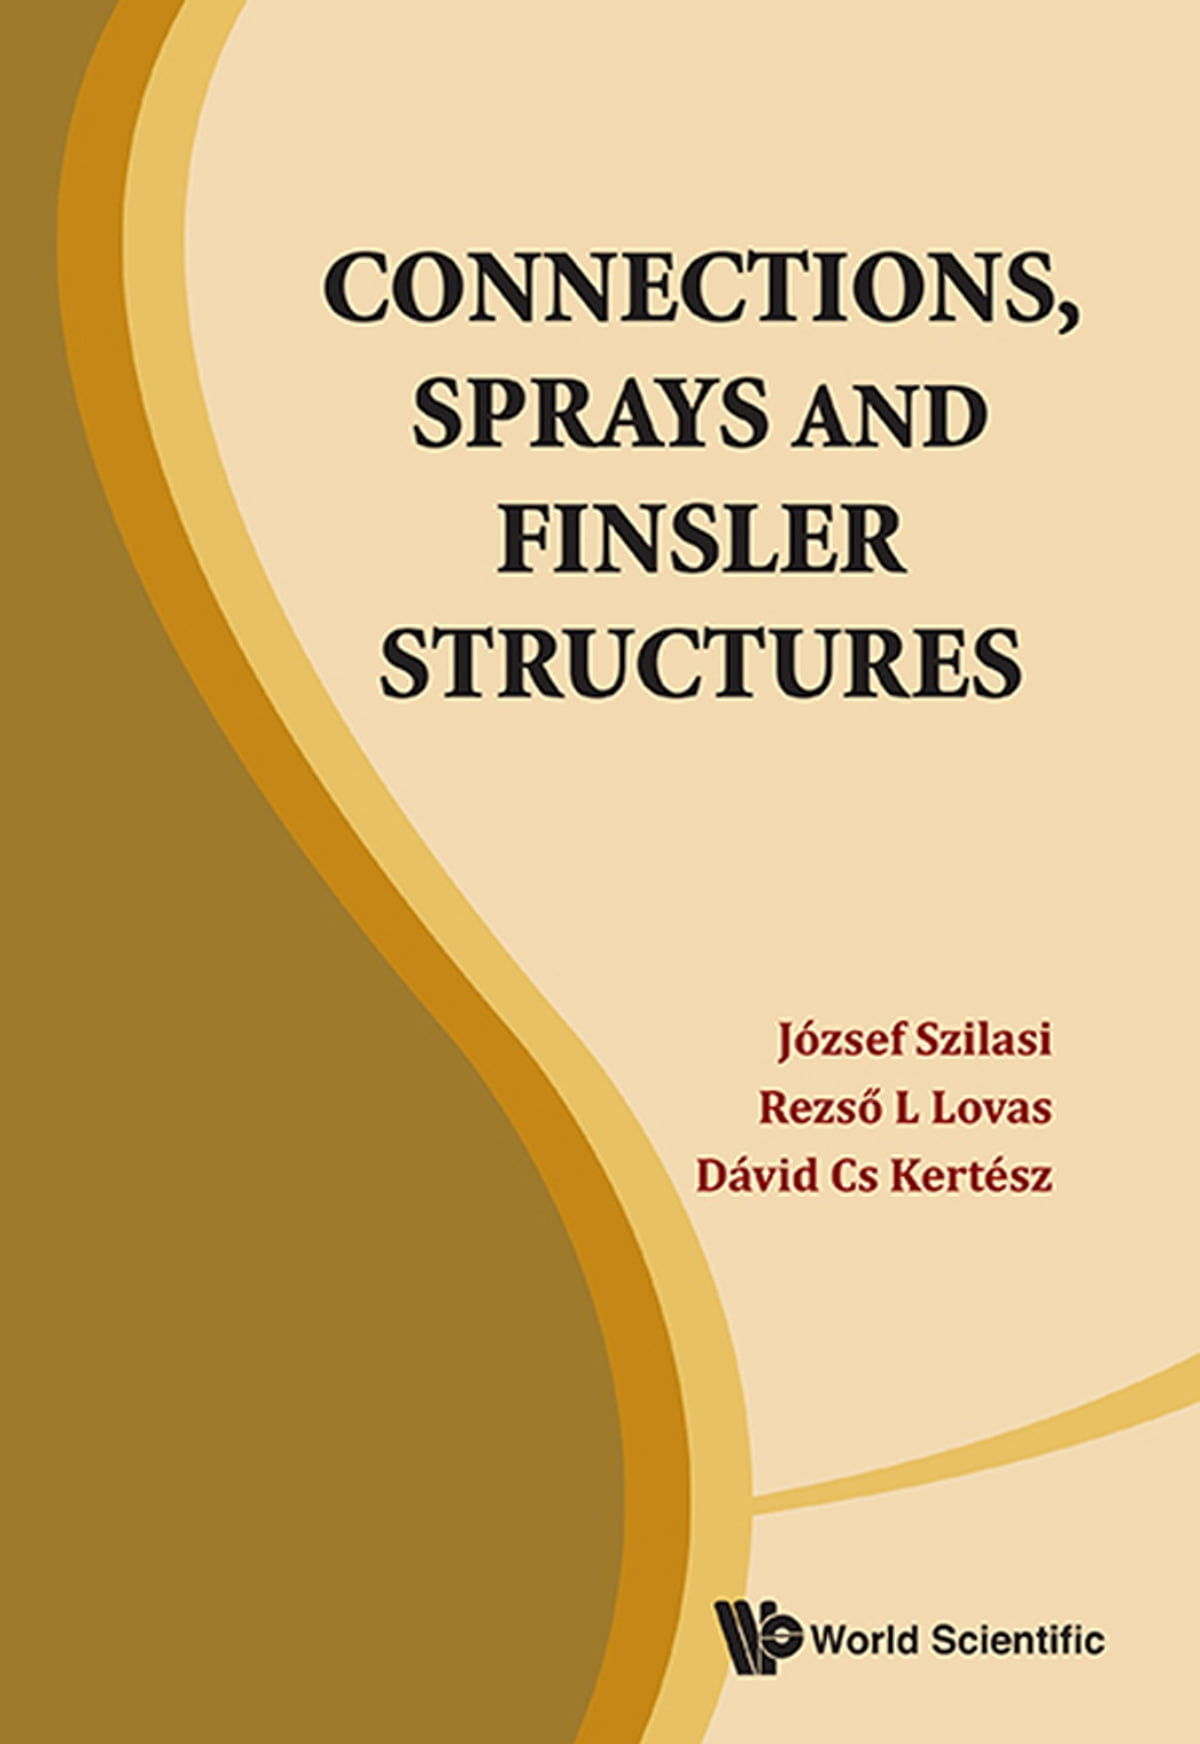 Connections, Sprays and Finsler Structures eBook by József Szilasi -  9789814440110 | Rakuten Kobo